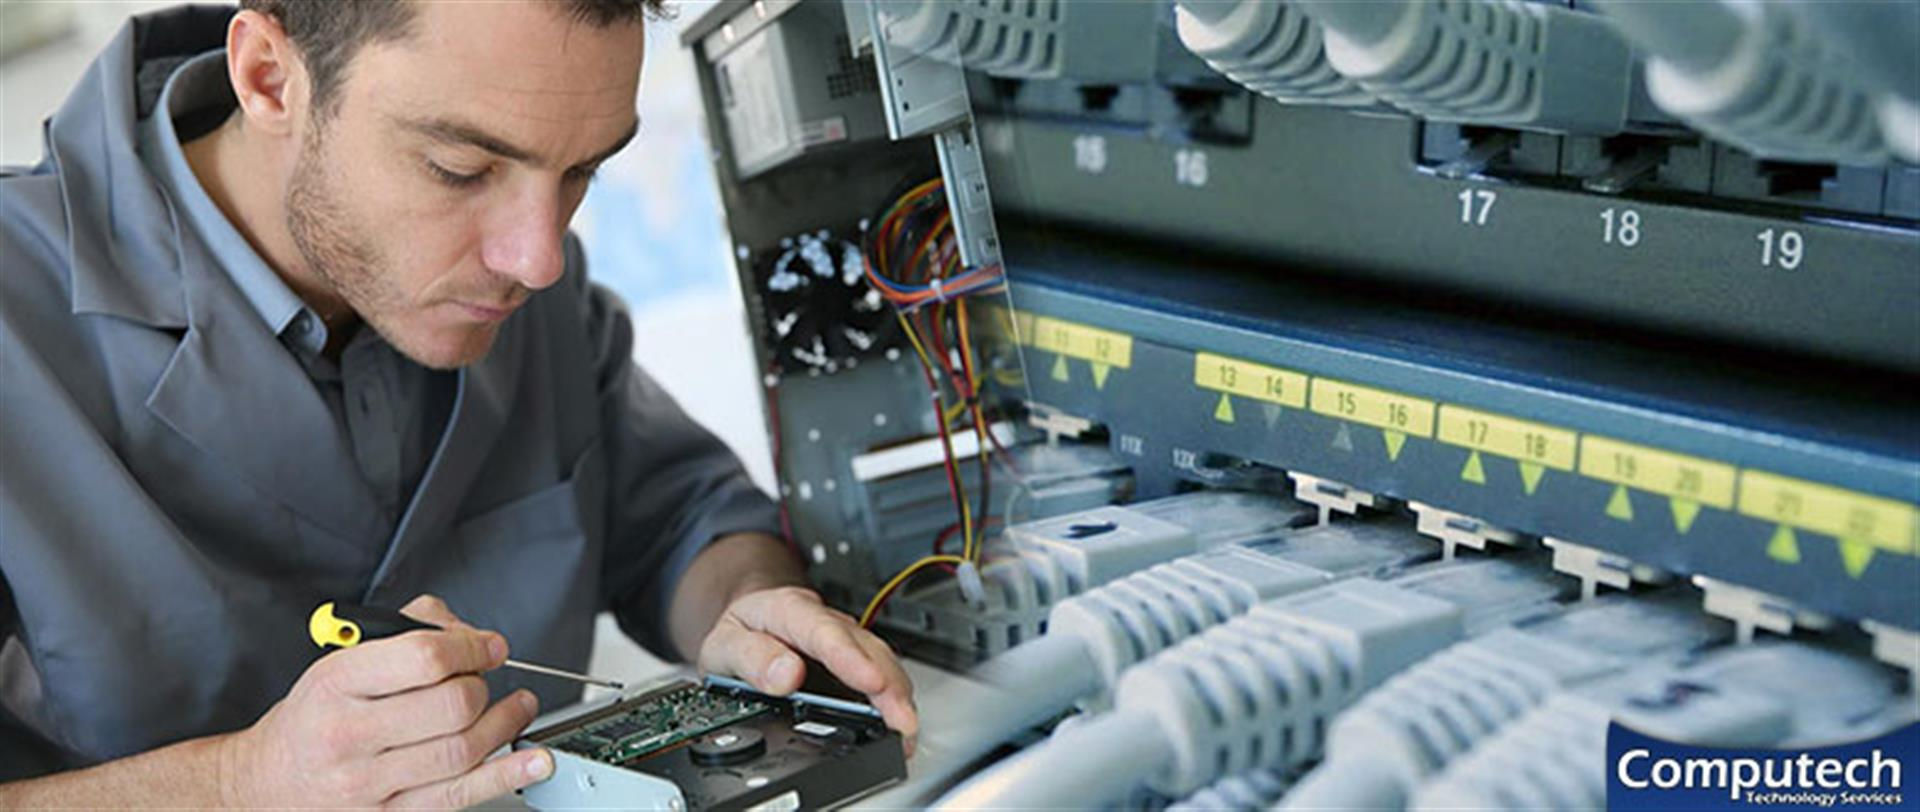 Rincon Georgia On Site PC & Printer Repair, Networking, Voice & Data Cabling Contractors